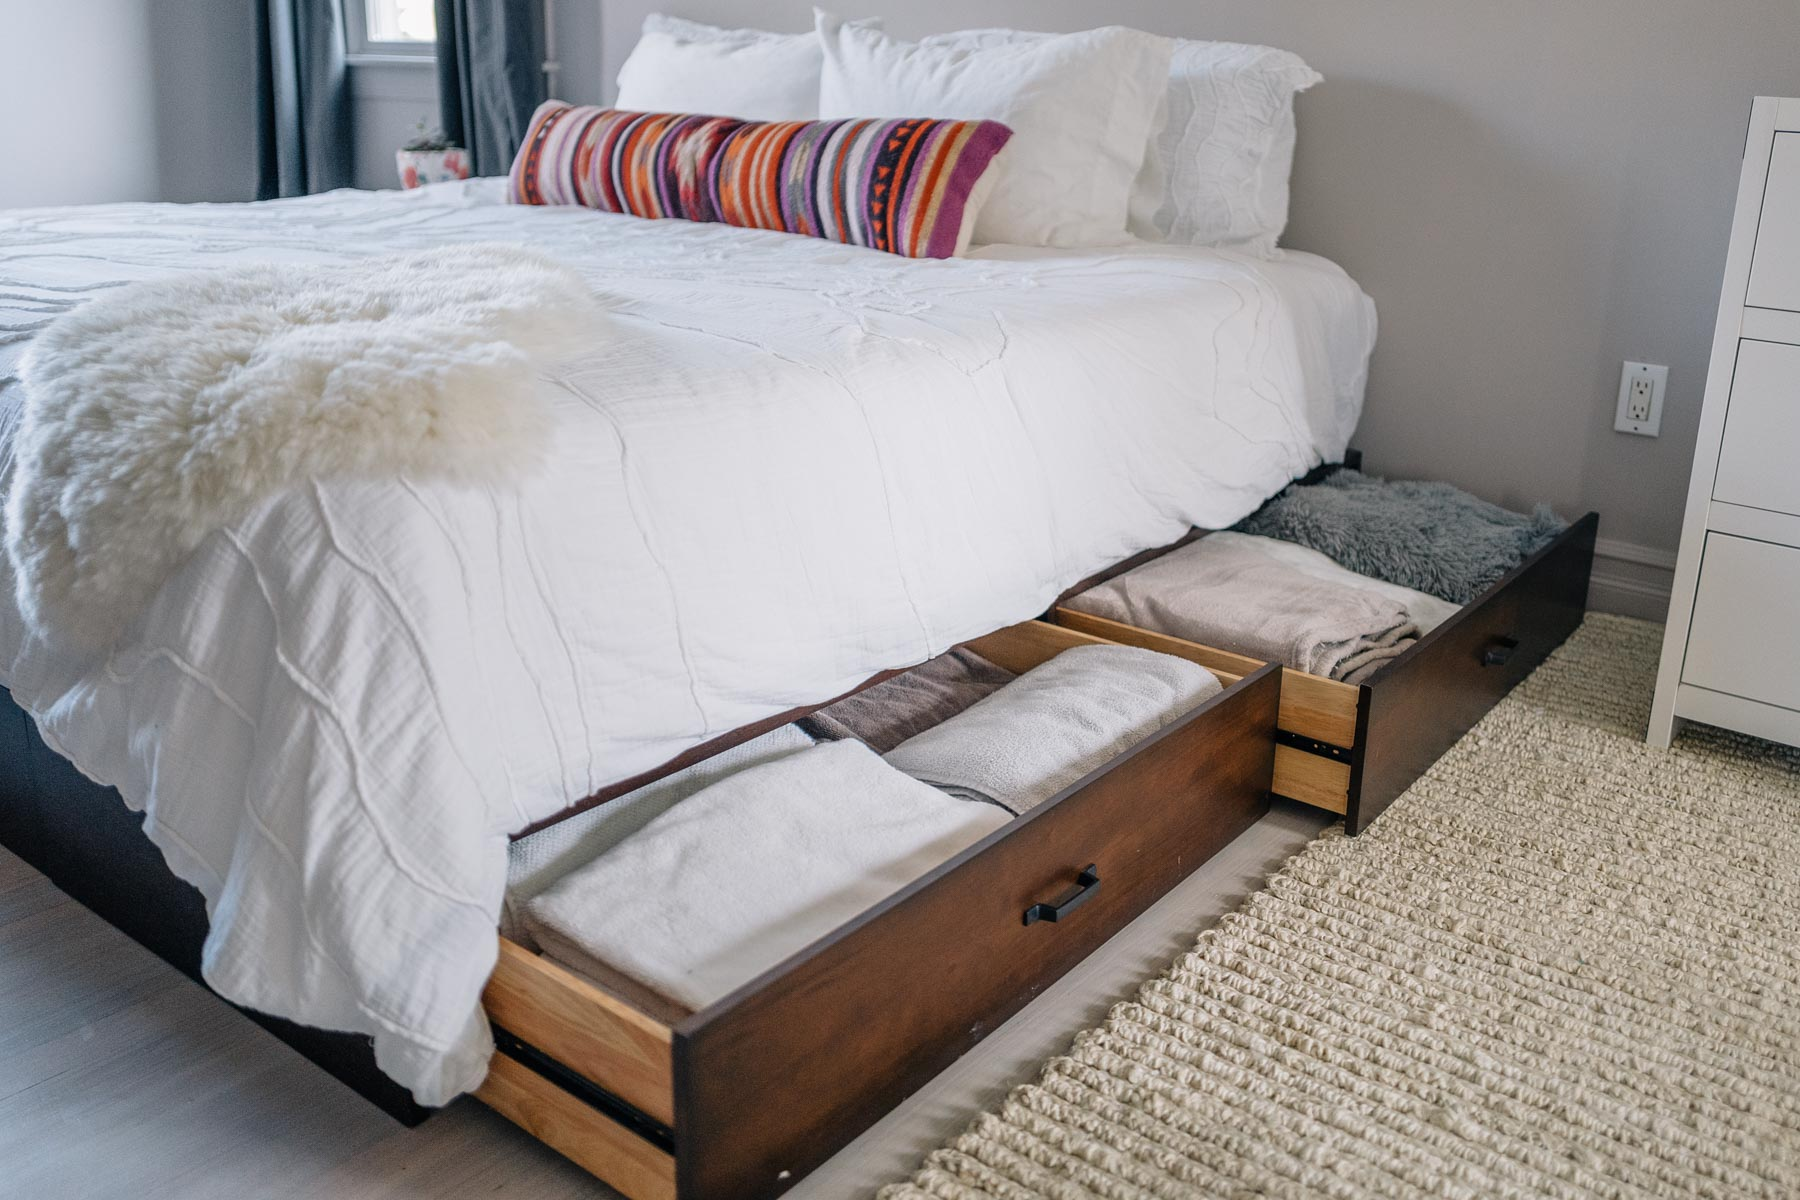 Jess Ann Kirby uses under bed storage for extra space in a bedroom